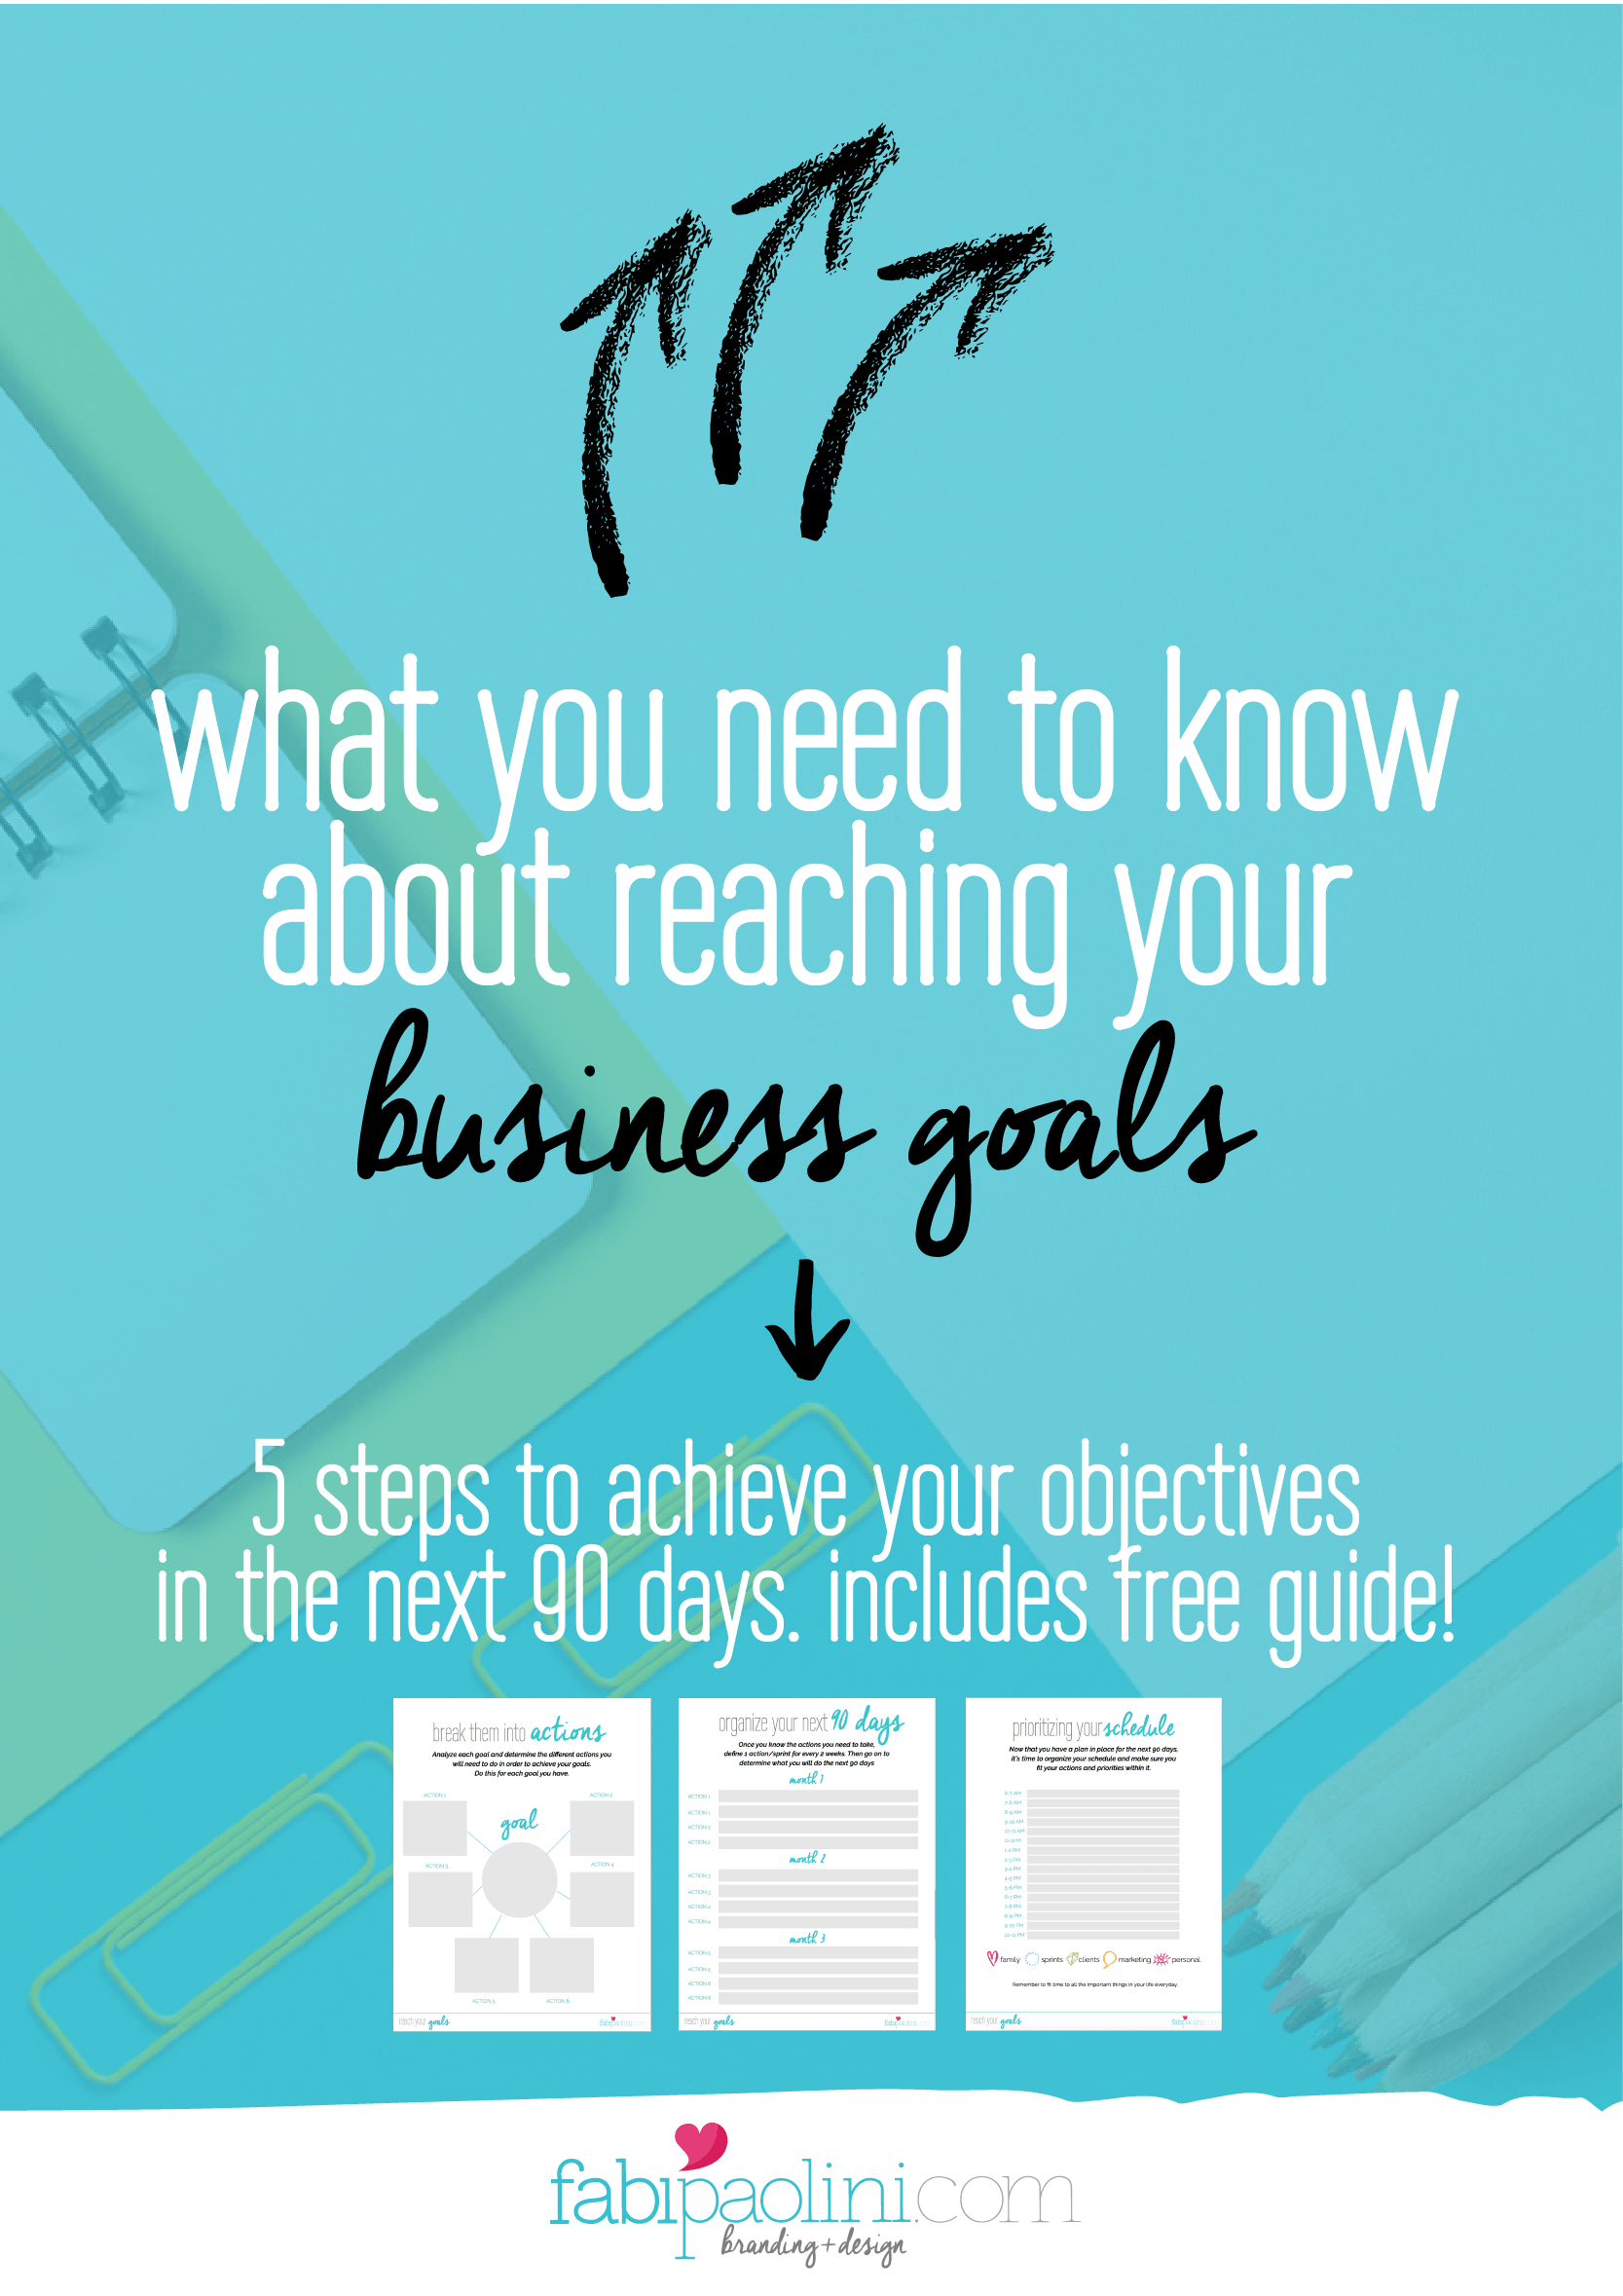 What you need to know about reaching your business goals. A super simple step by step guide to making it happen! It includes a free guide to download inside. Check it out!